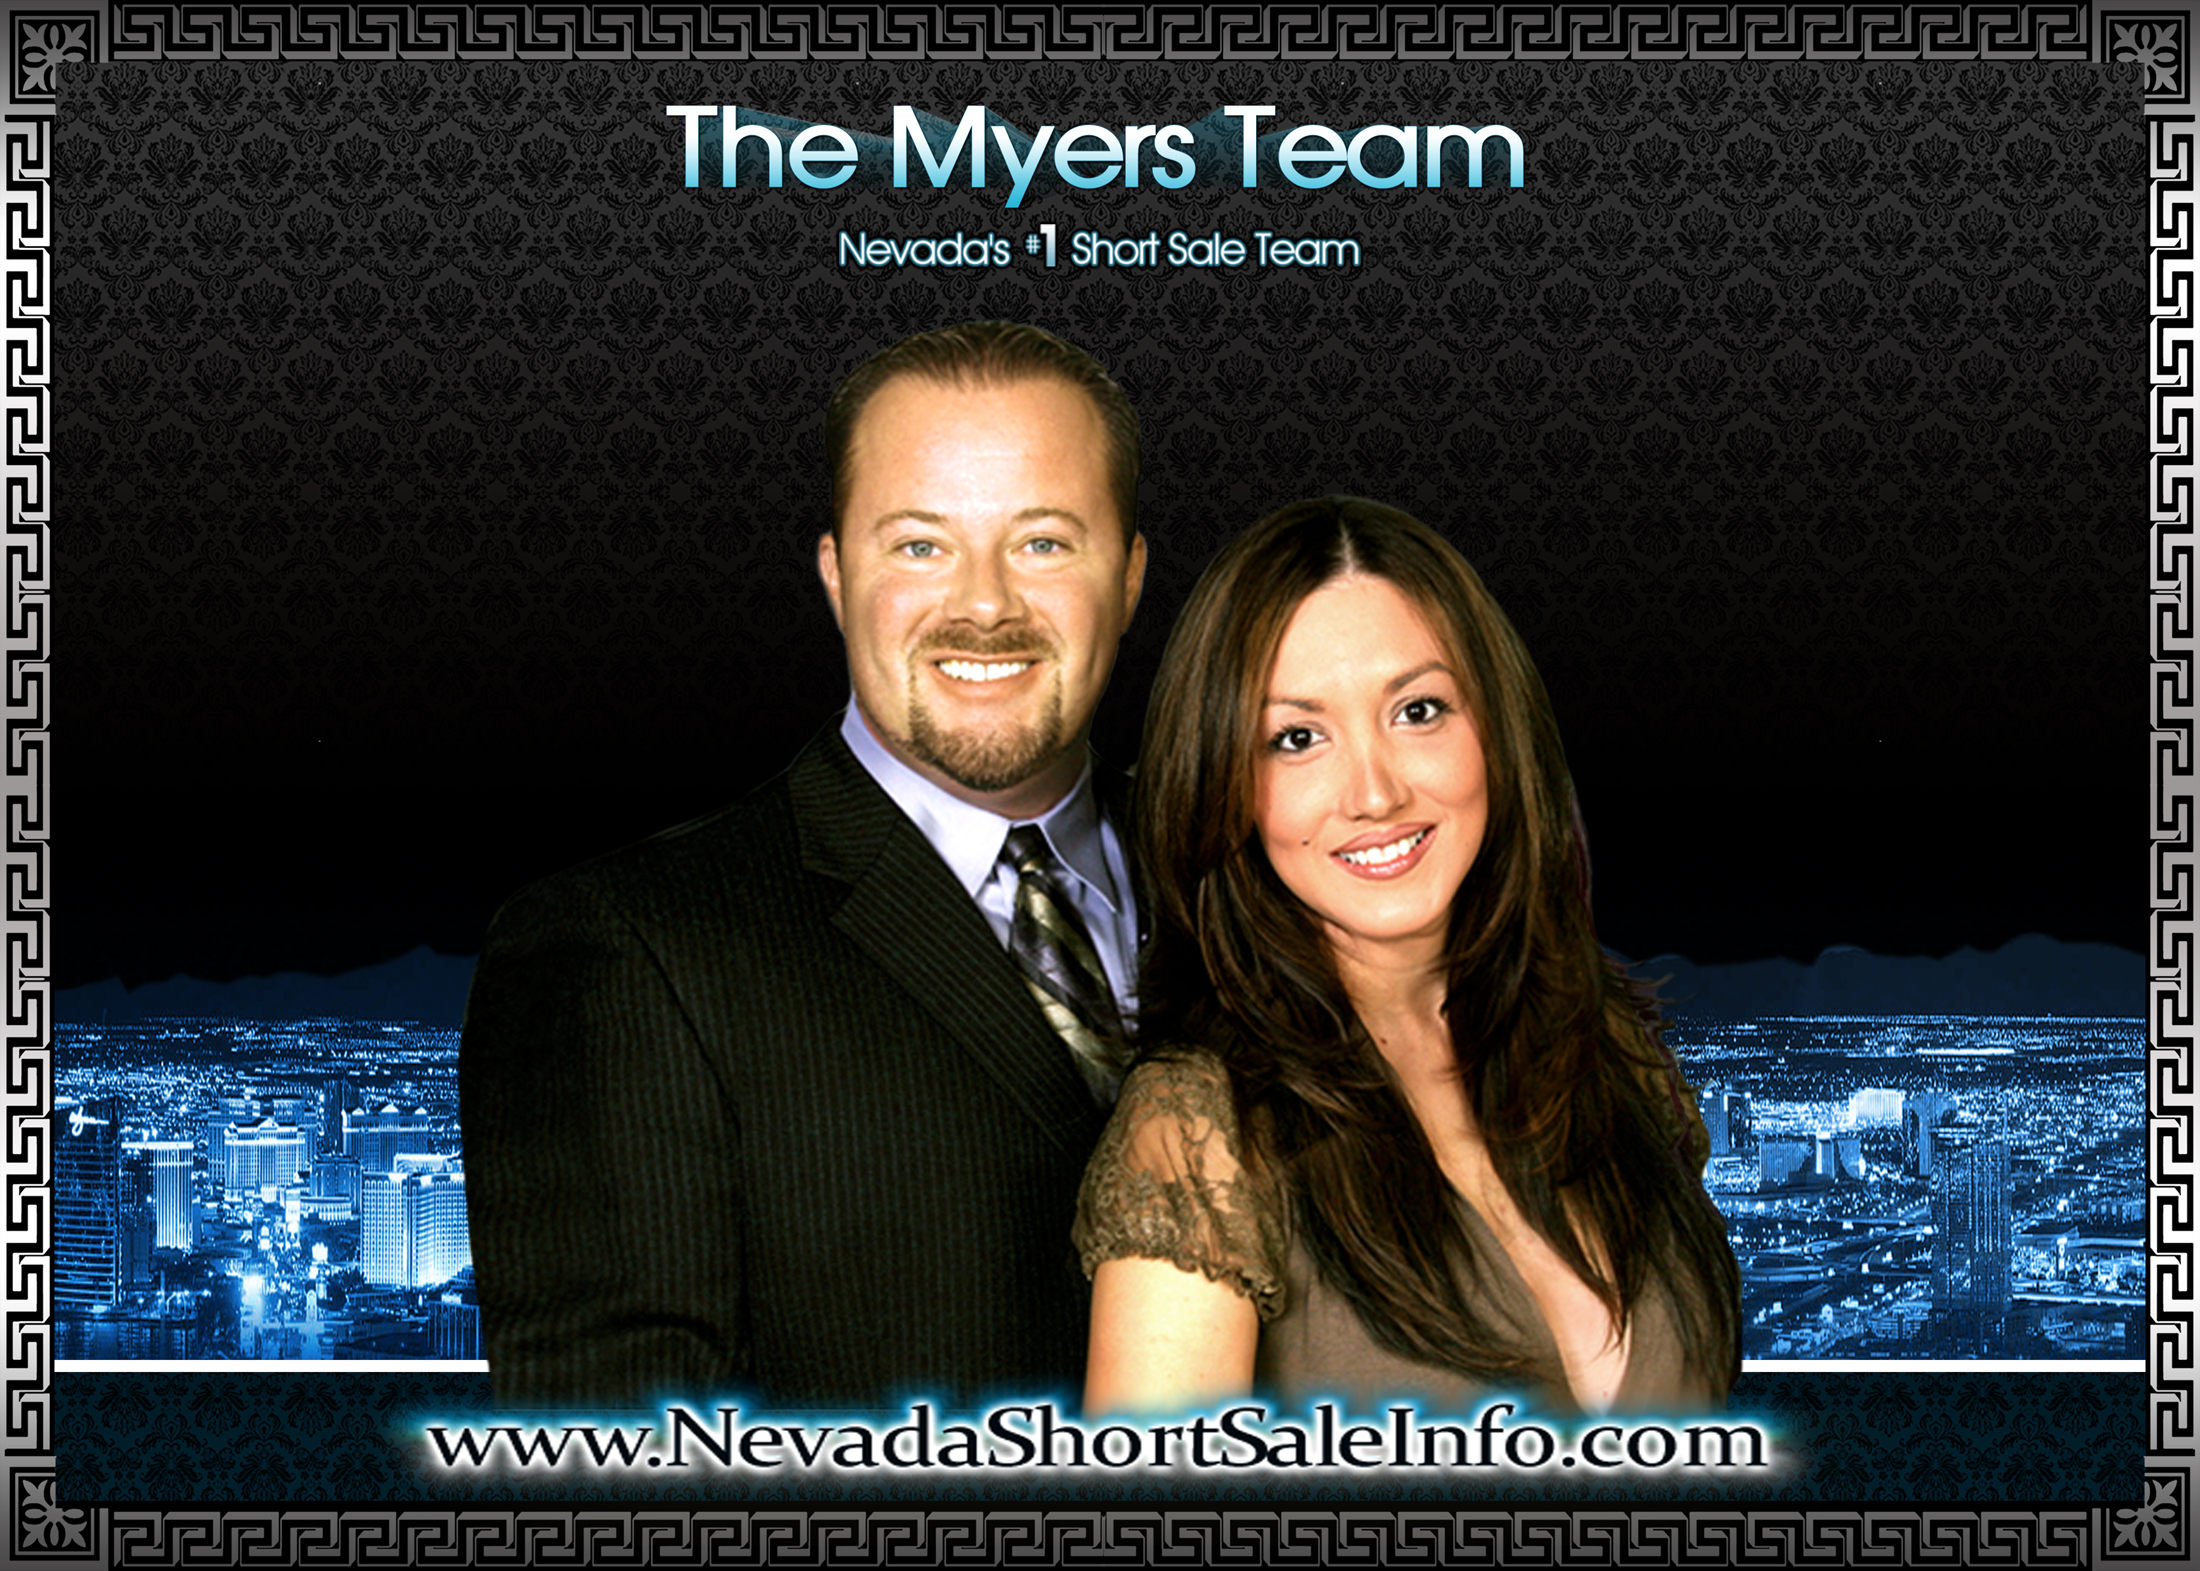 The Myers Team Caliber Realty, Las Vegas Nevada